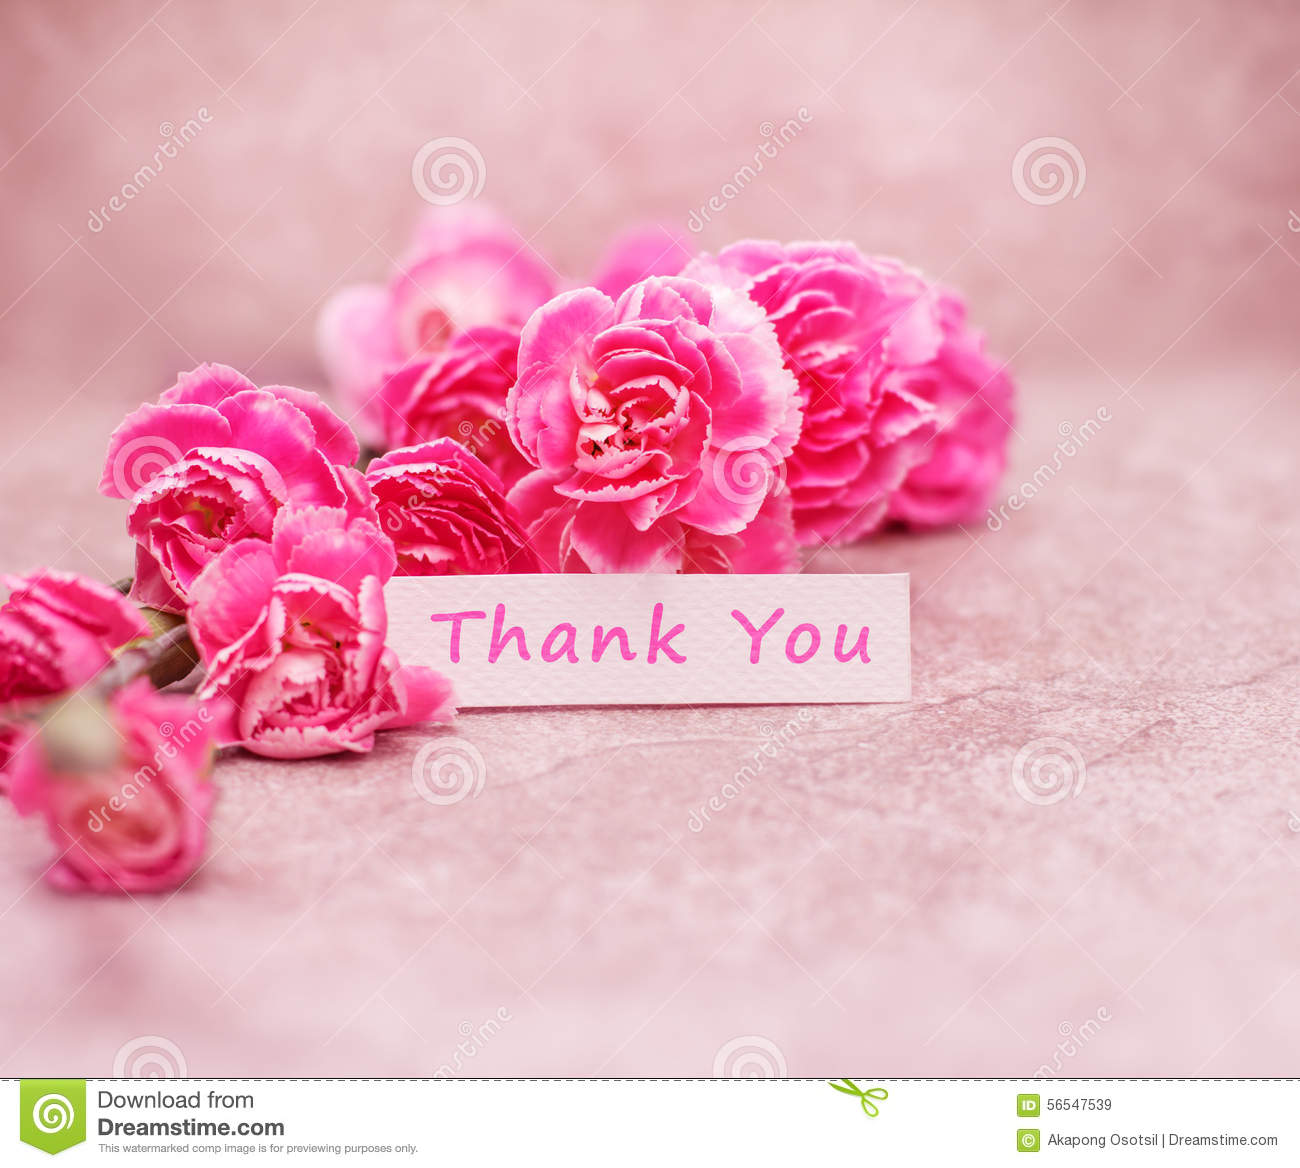 Beautiful Thank You Card Royalty Free Stock Images - Image: 38053009